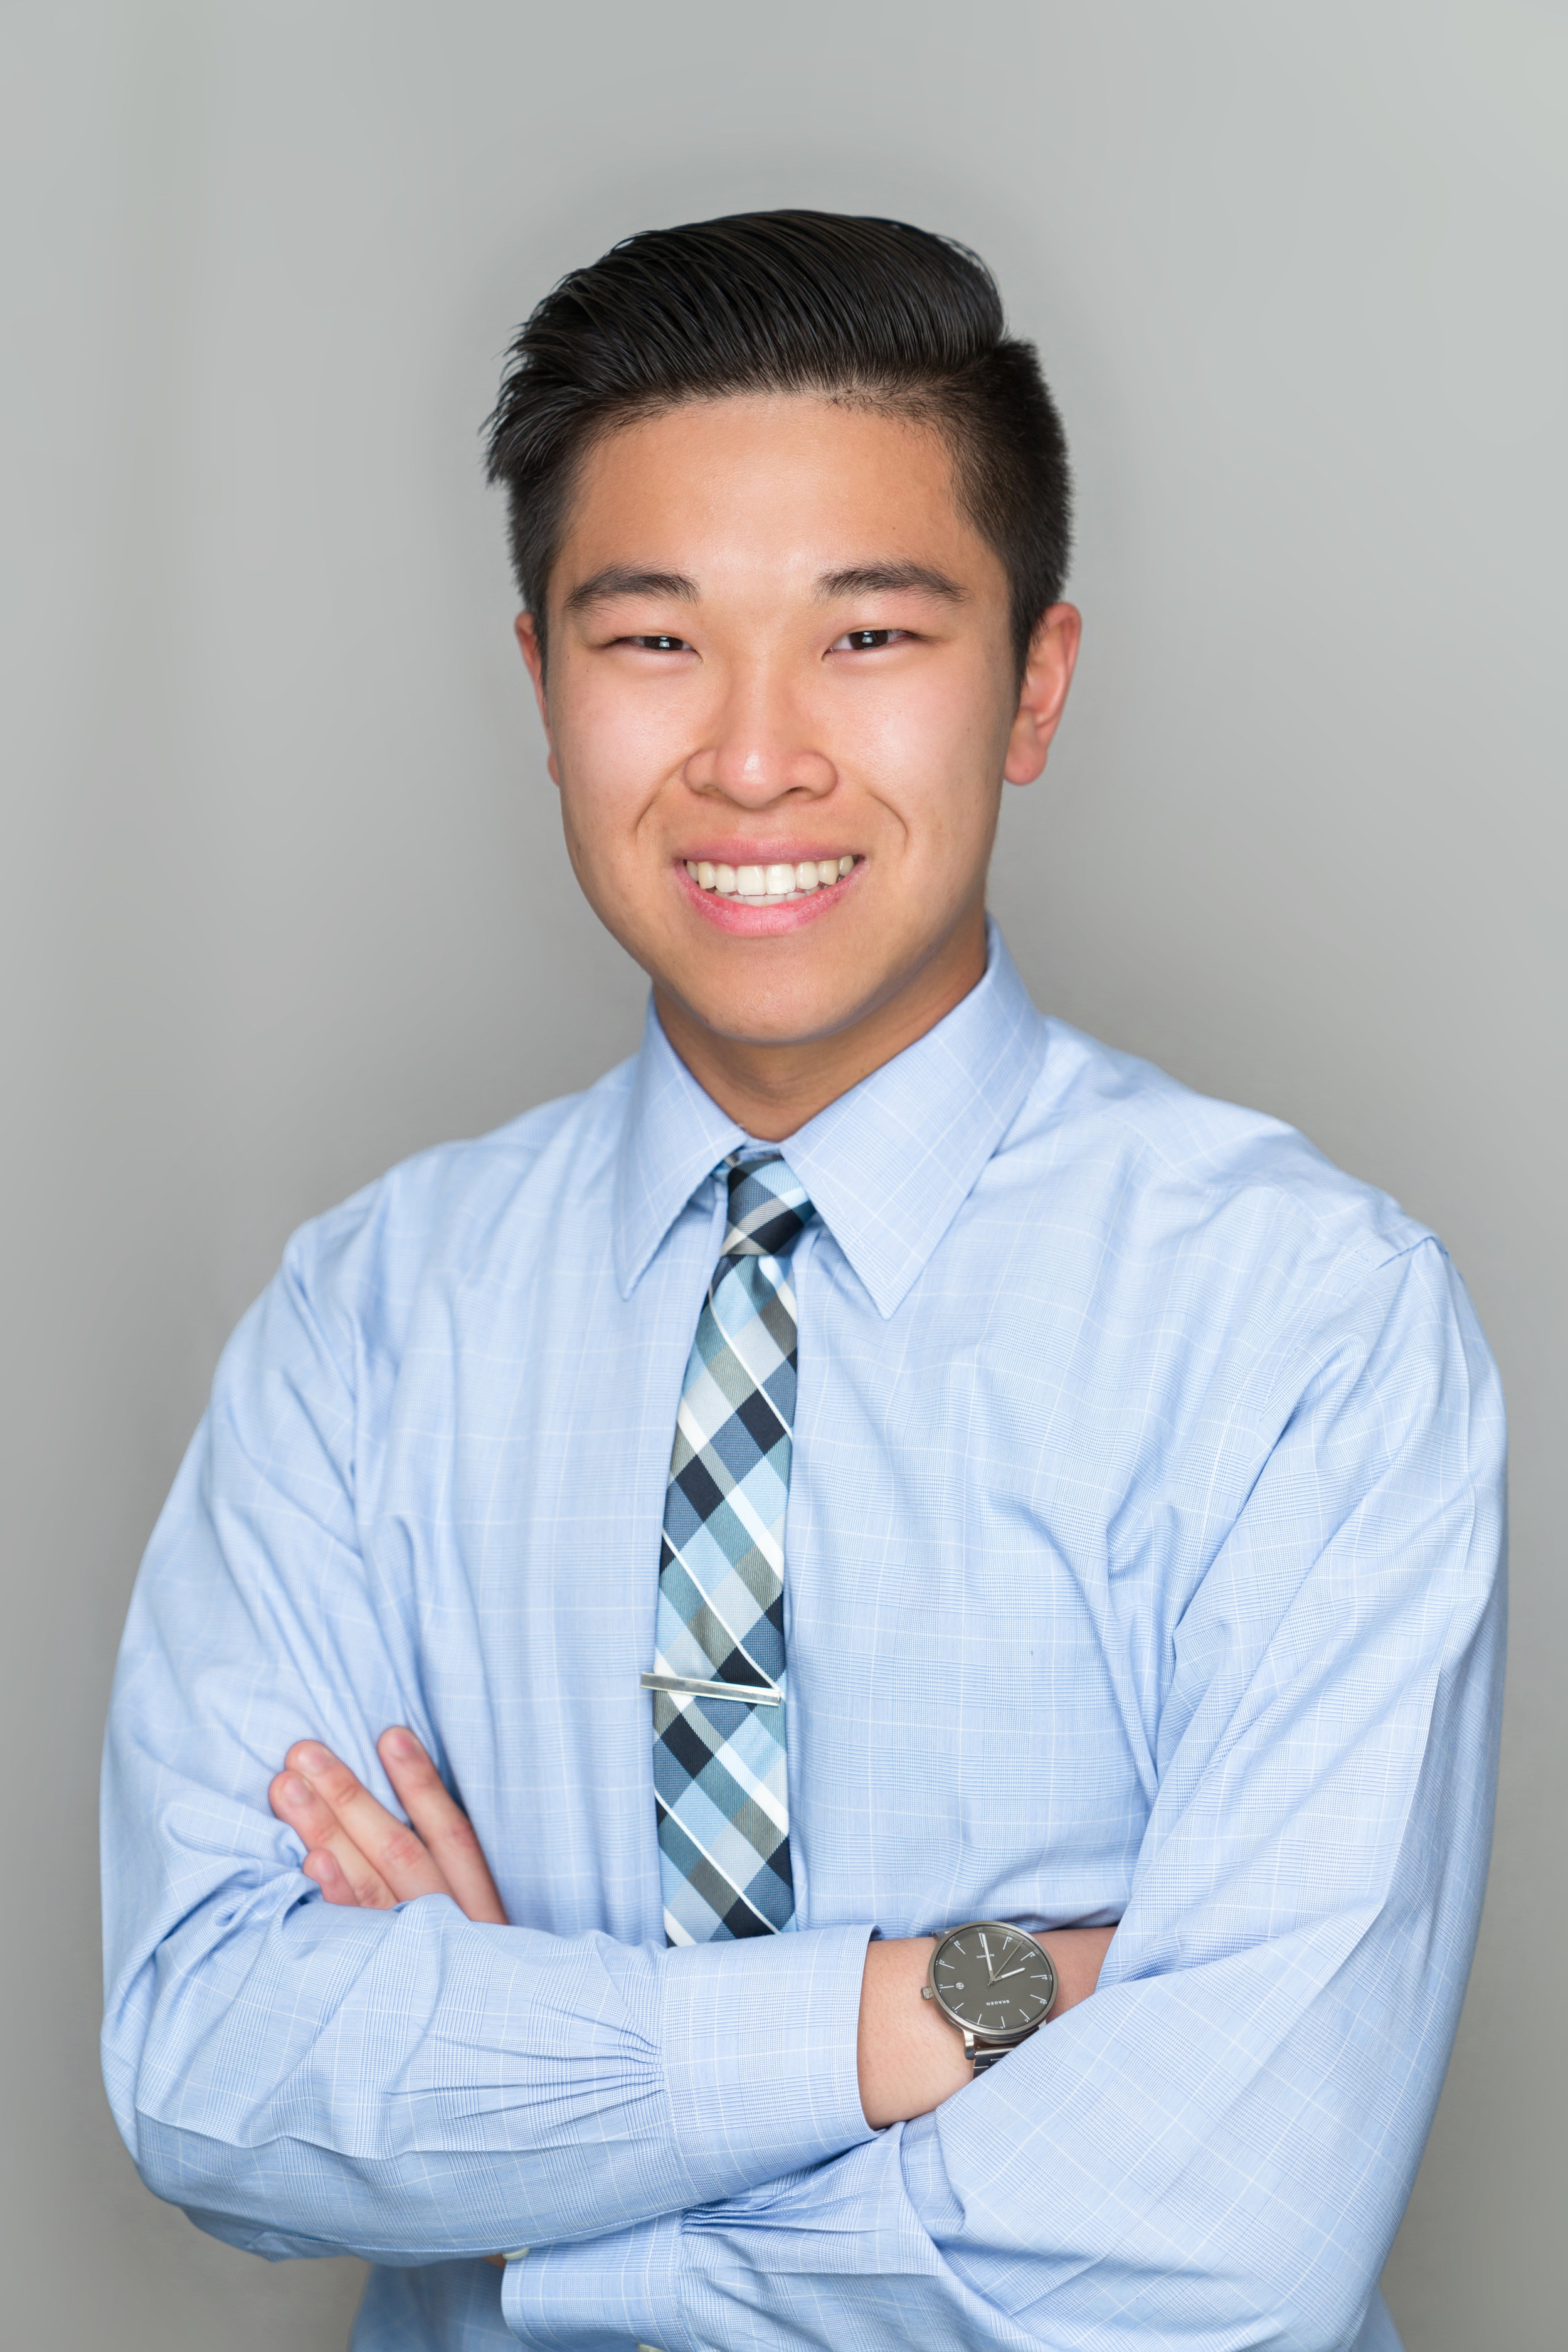 Jeffrey Jiang   Major: Biochemistry and Molecular Biology   Career Goal: Cardiologist